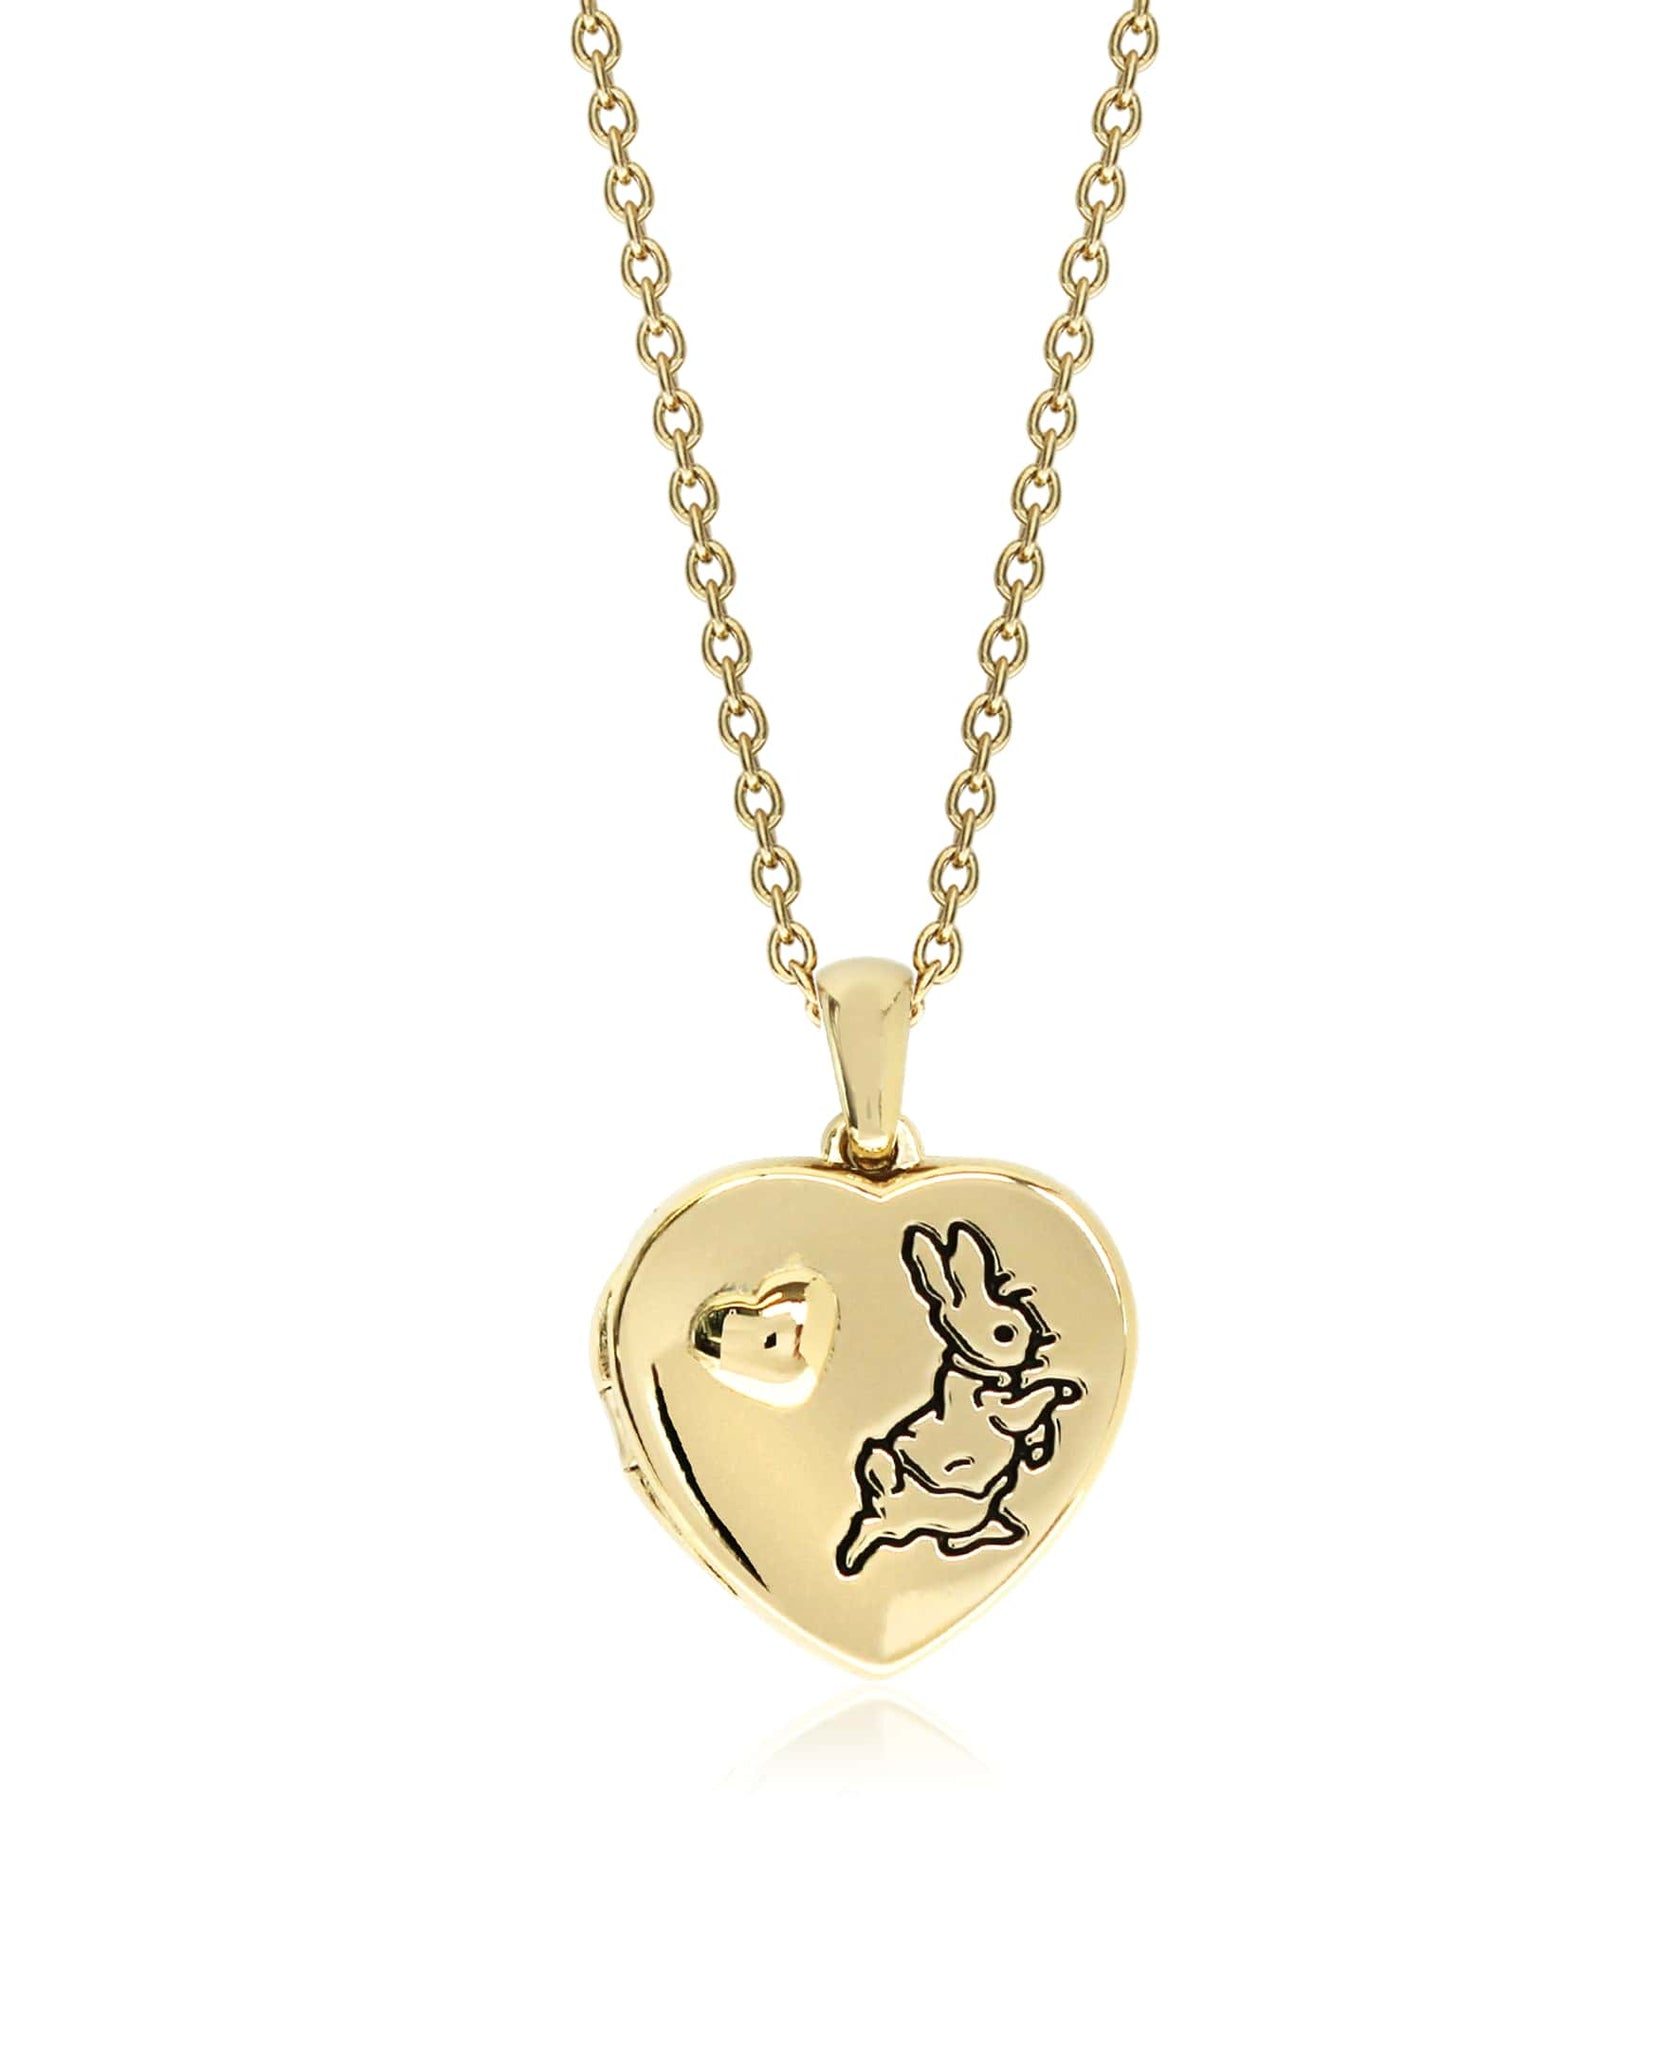 Beatrix Potter Gold Plated Sterling Silver Peter Rabbit Heart Locket Necklace - Rhona Sutton Jewellery